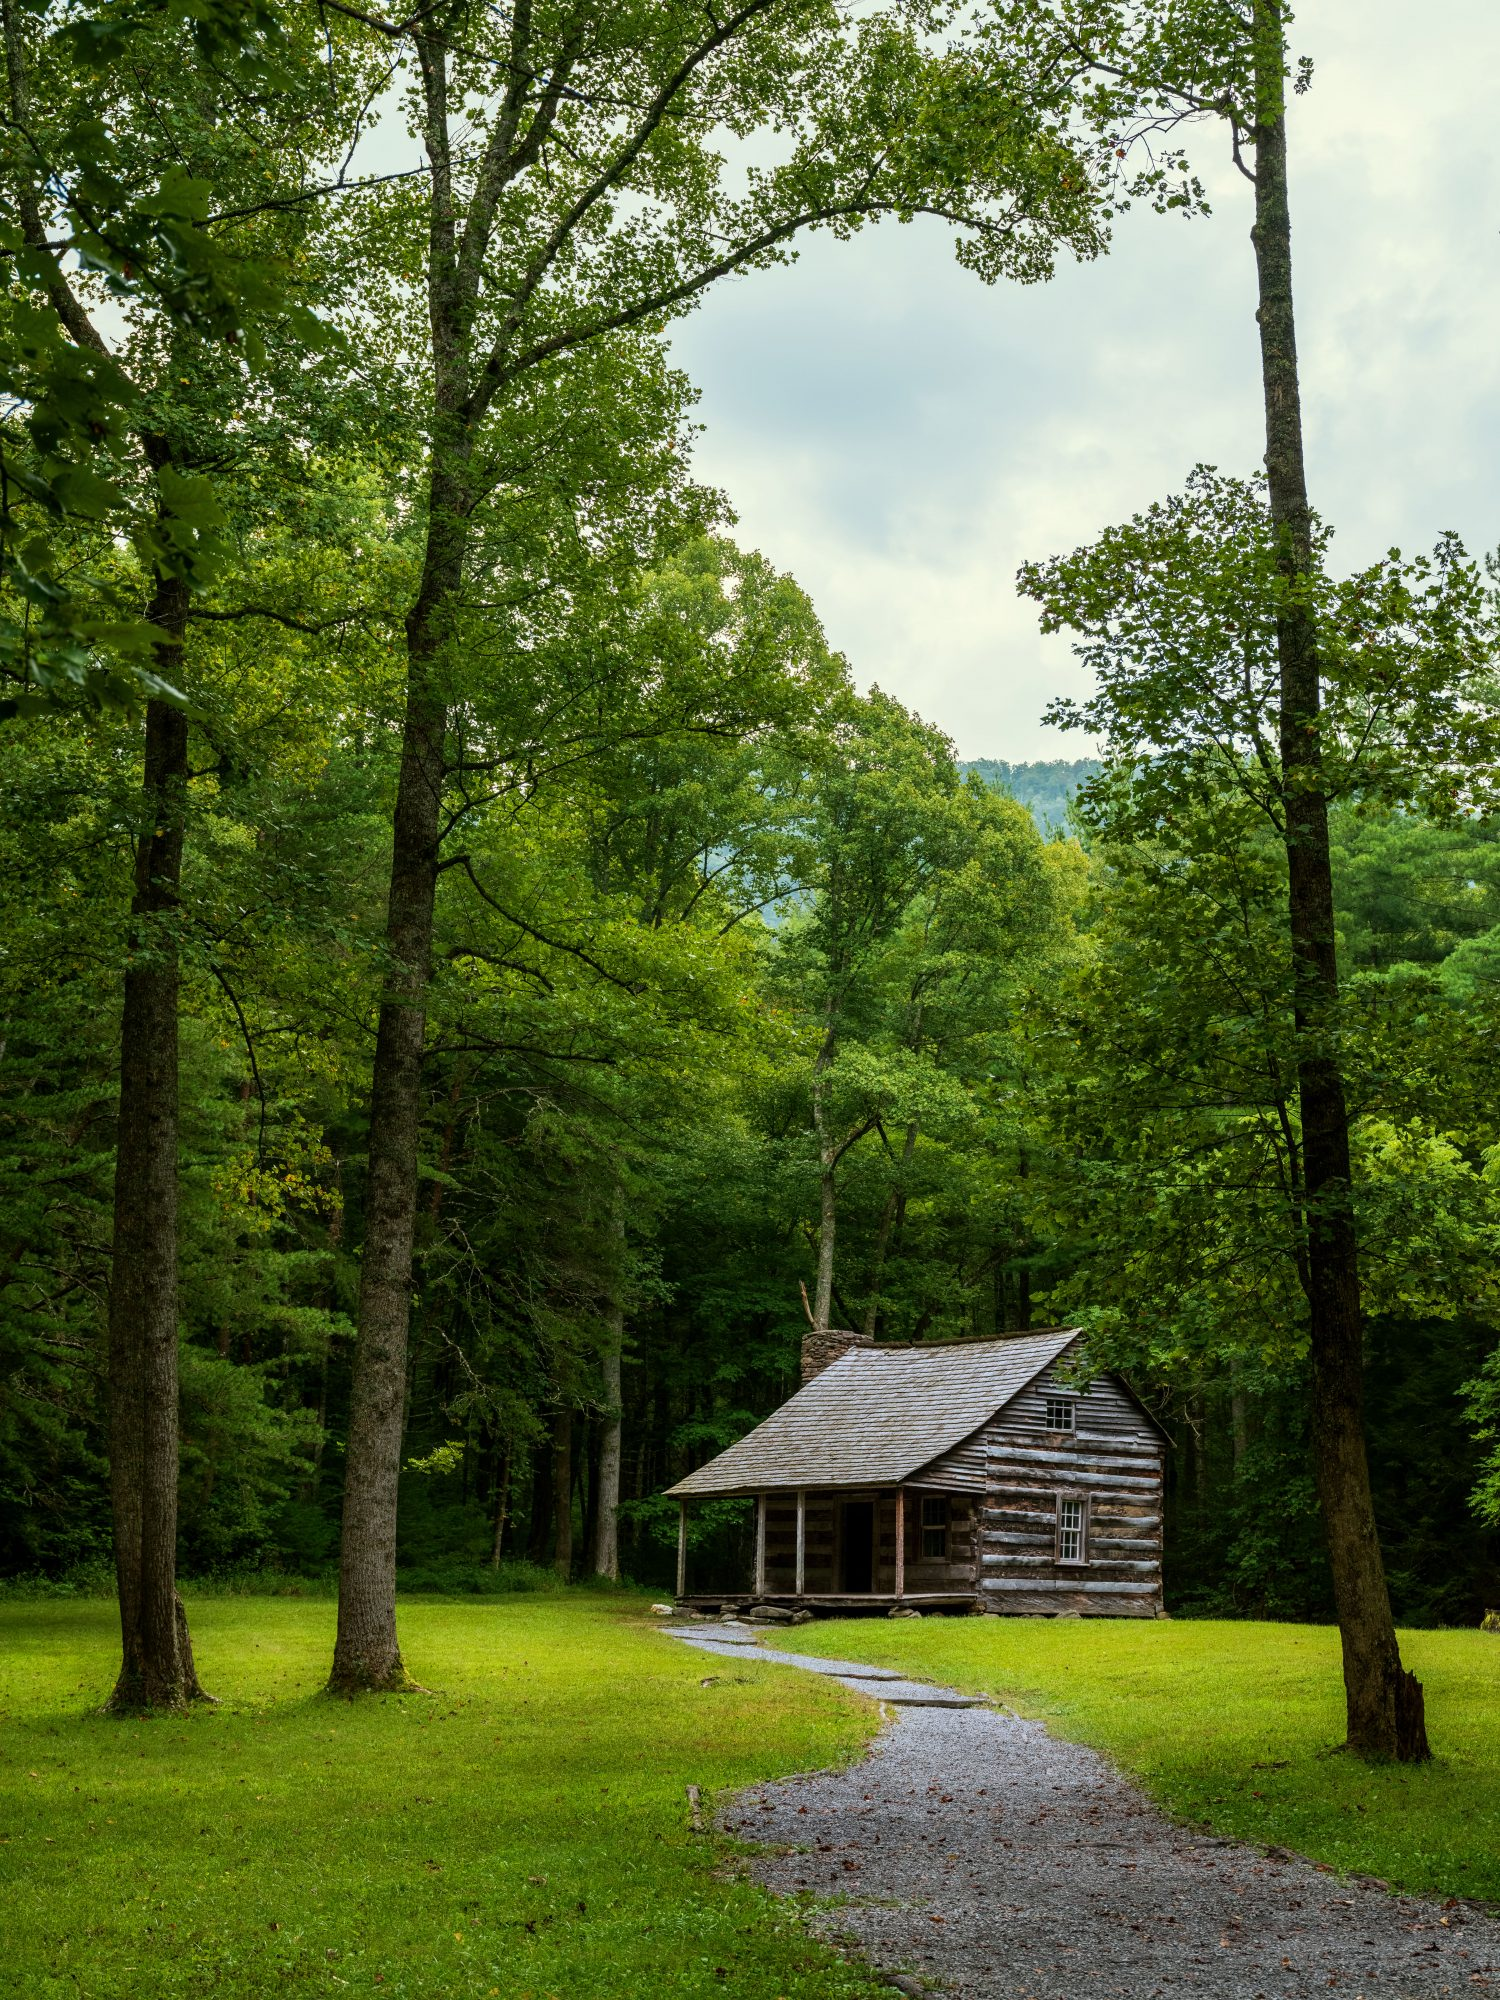 The Carter Shields Cabin on Cades Cove Loop in the Great Smoky Mountains National Park